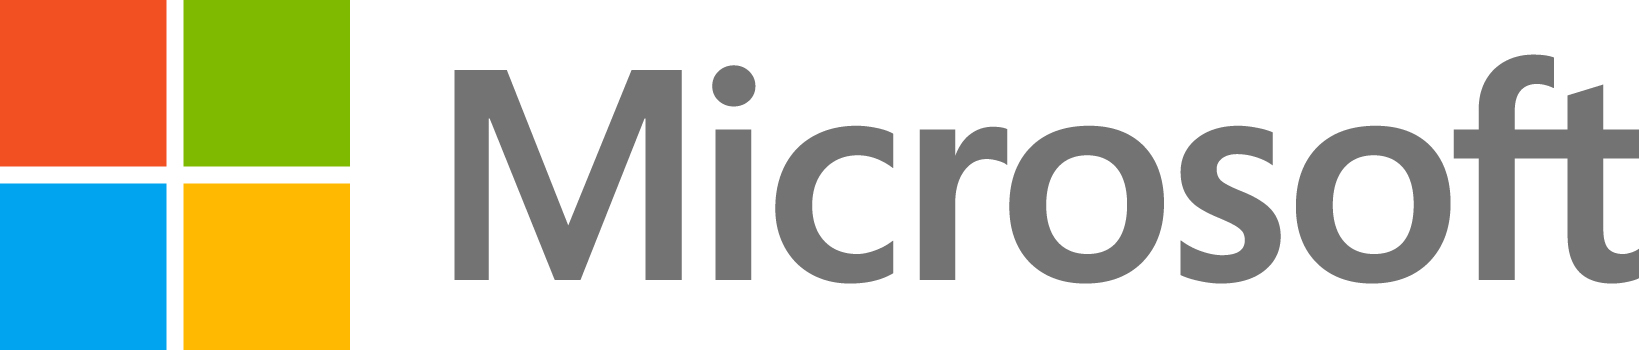 Nieuwe Microsoft logo